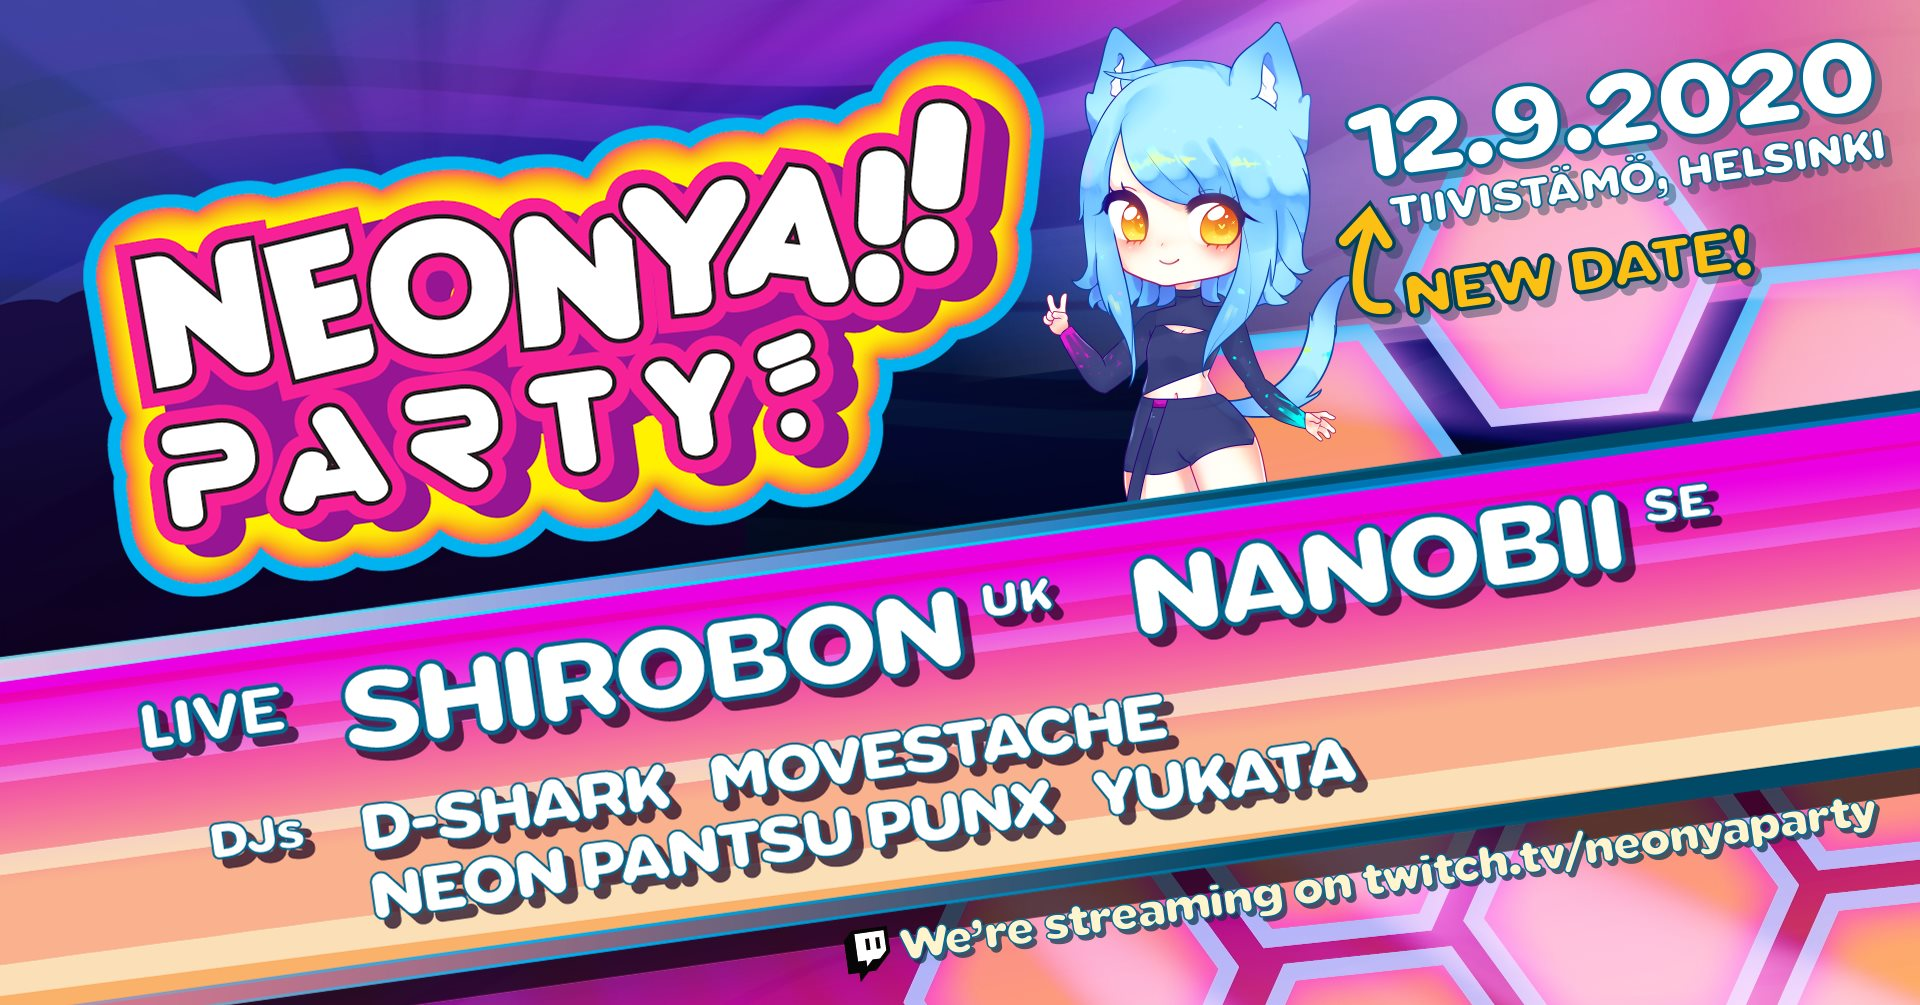 Link to event Neonya!! Party